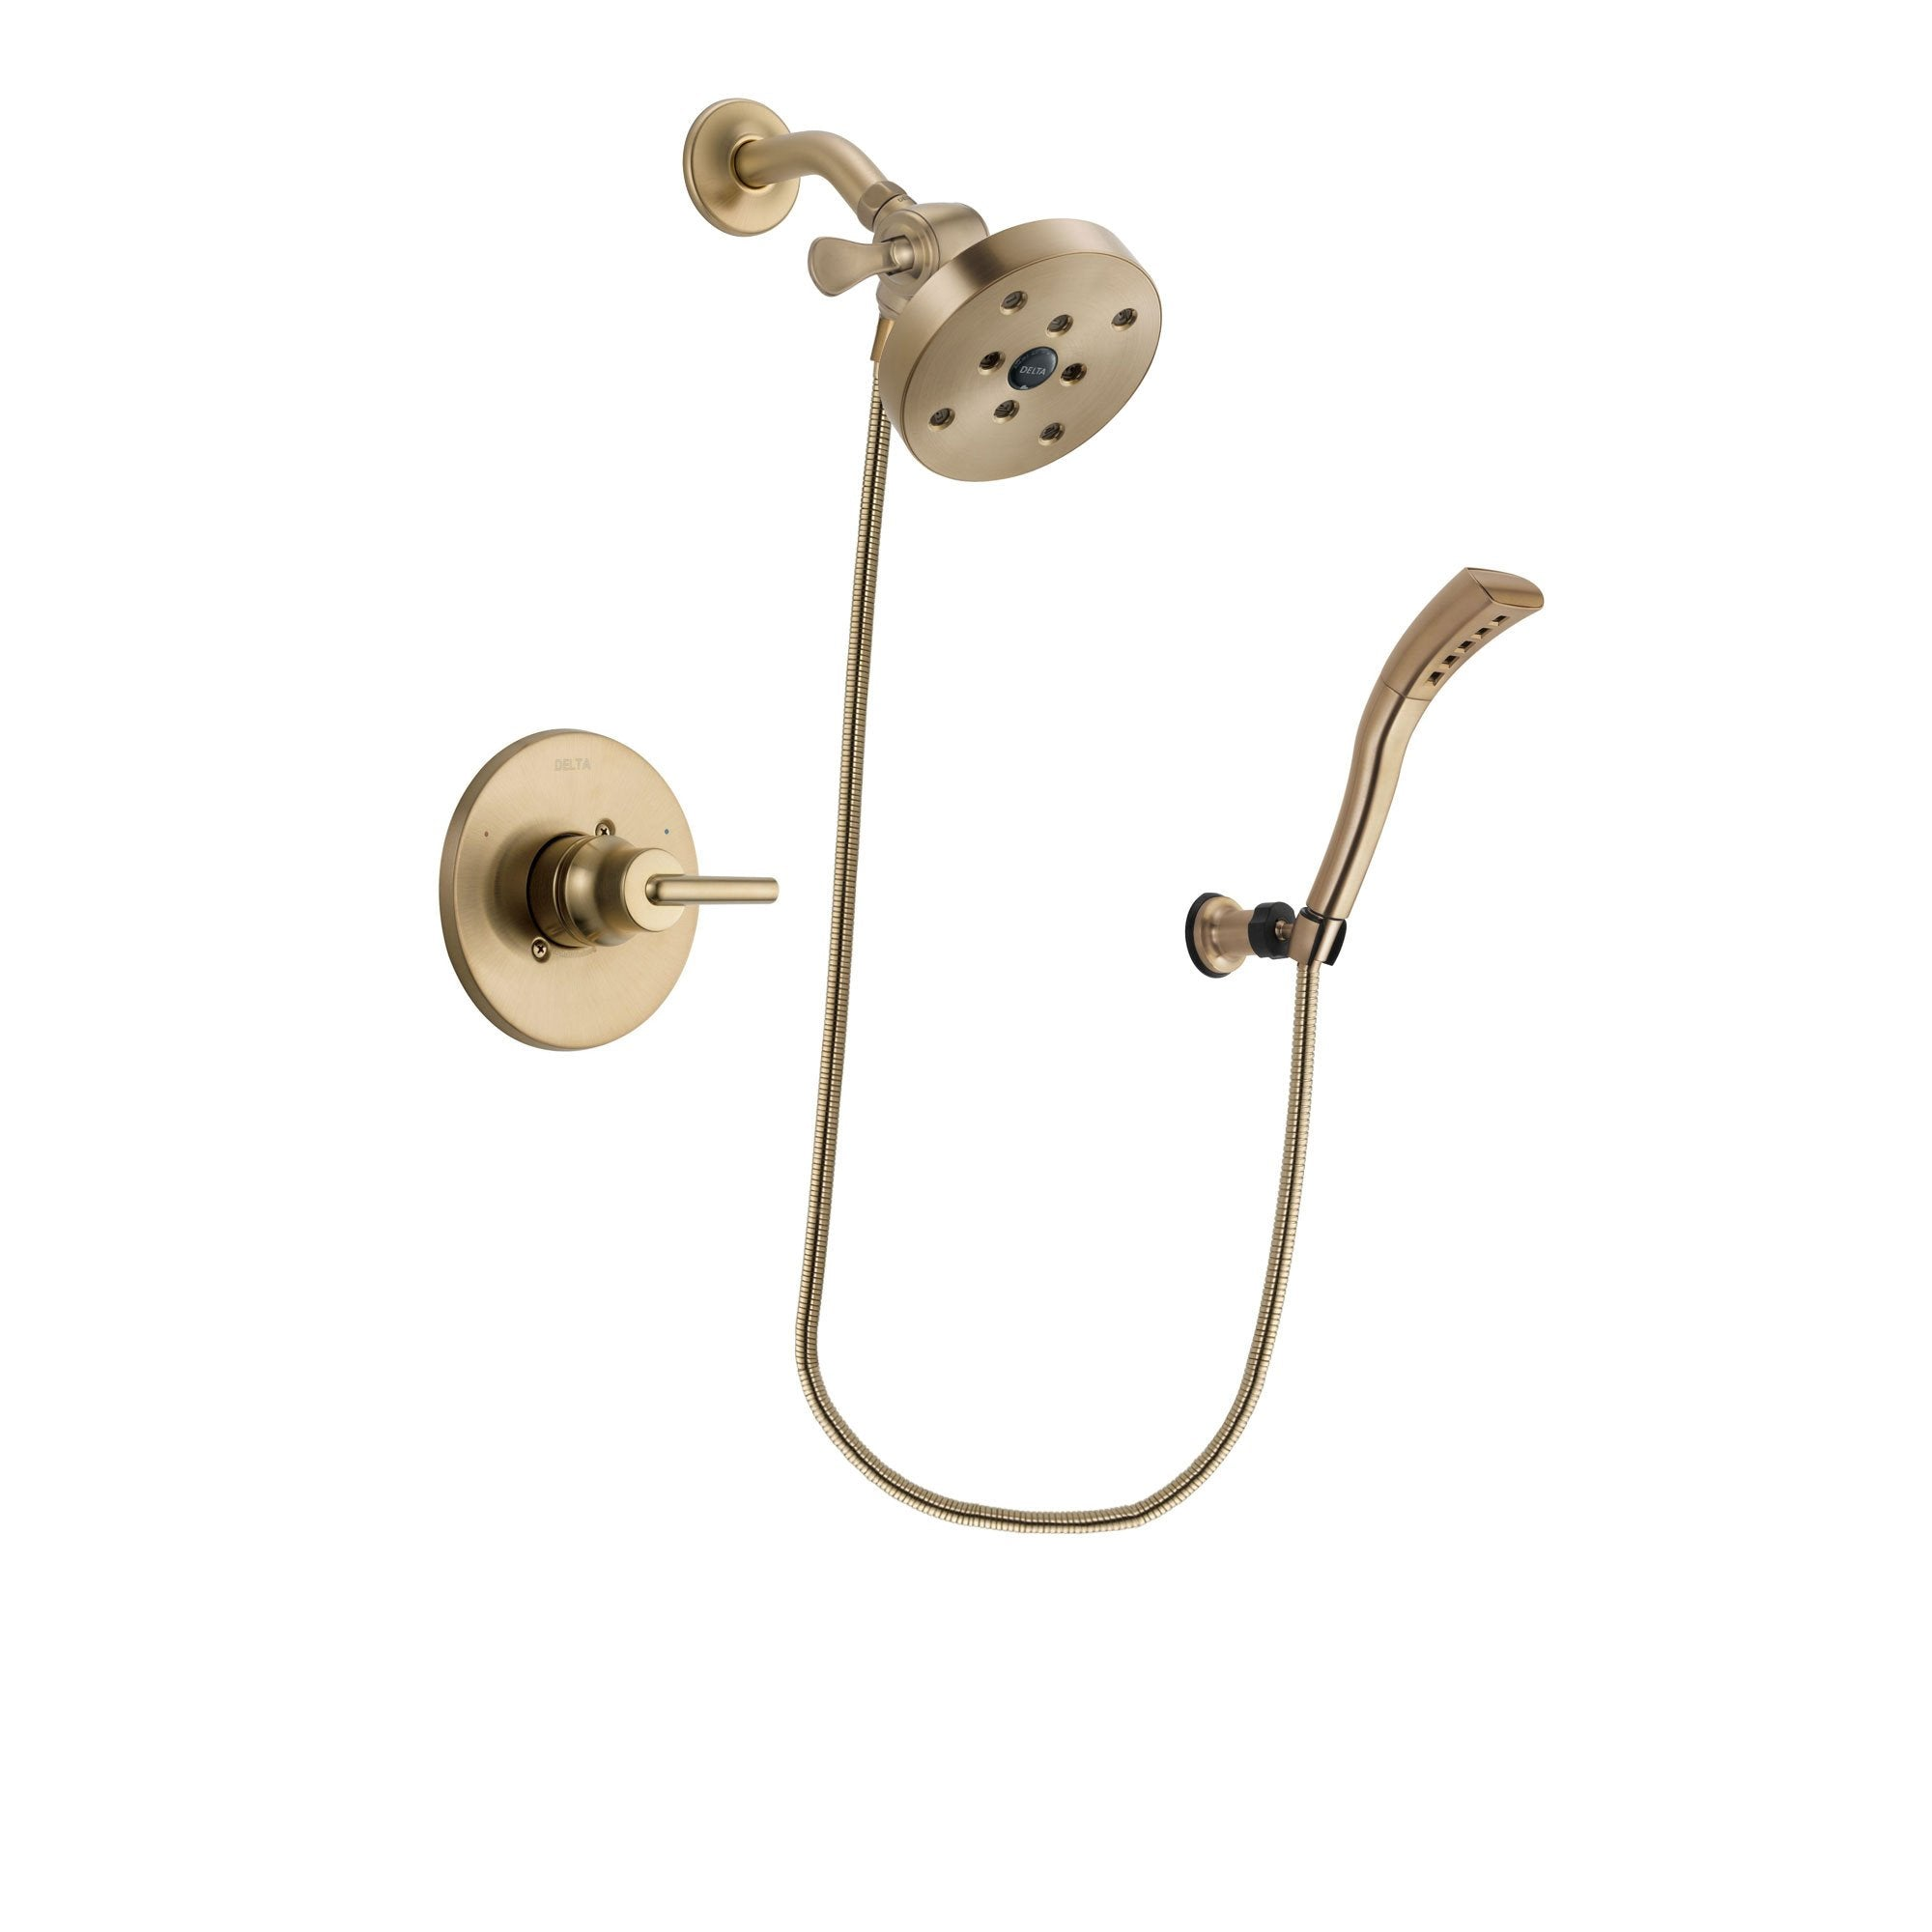 Delta Trinsic Champagne Bronze Finish Shower Faucet System Package with 5-1/2 inch Showerhead and Modern Wall Mount Personal Handheld Shower Spray Includes Rough-in Valve DSP3718V